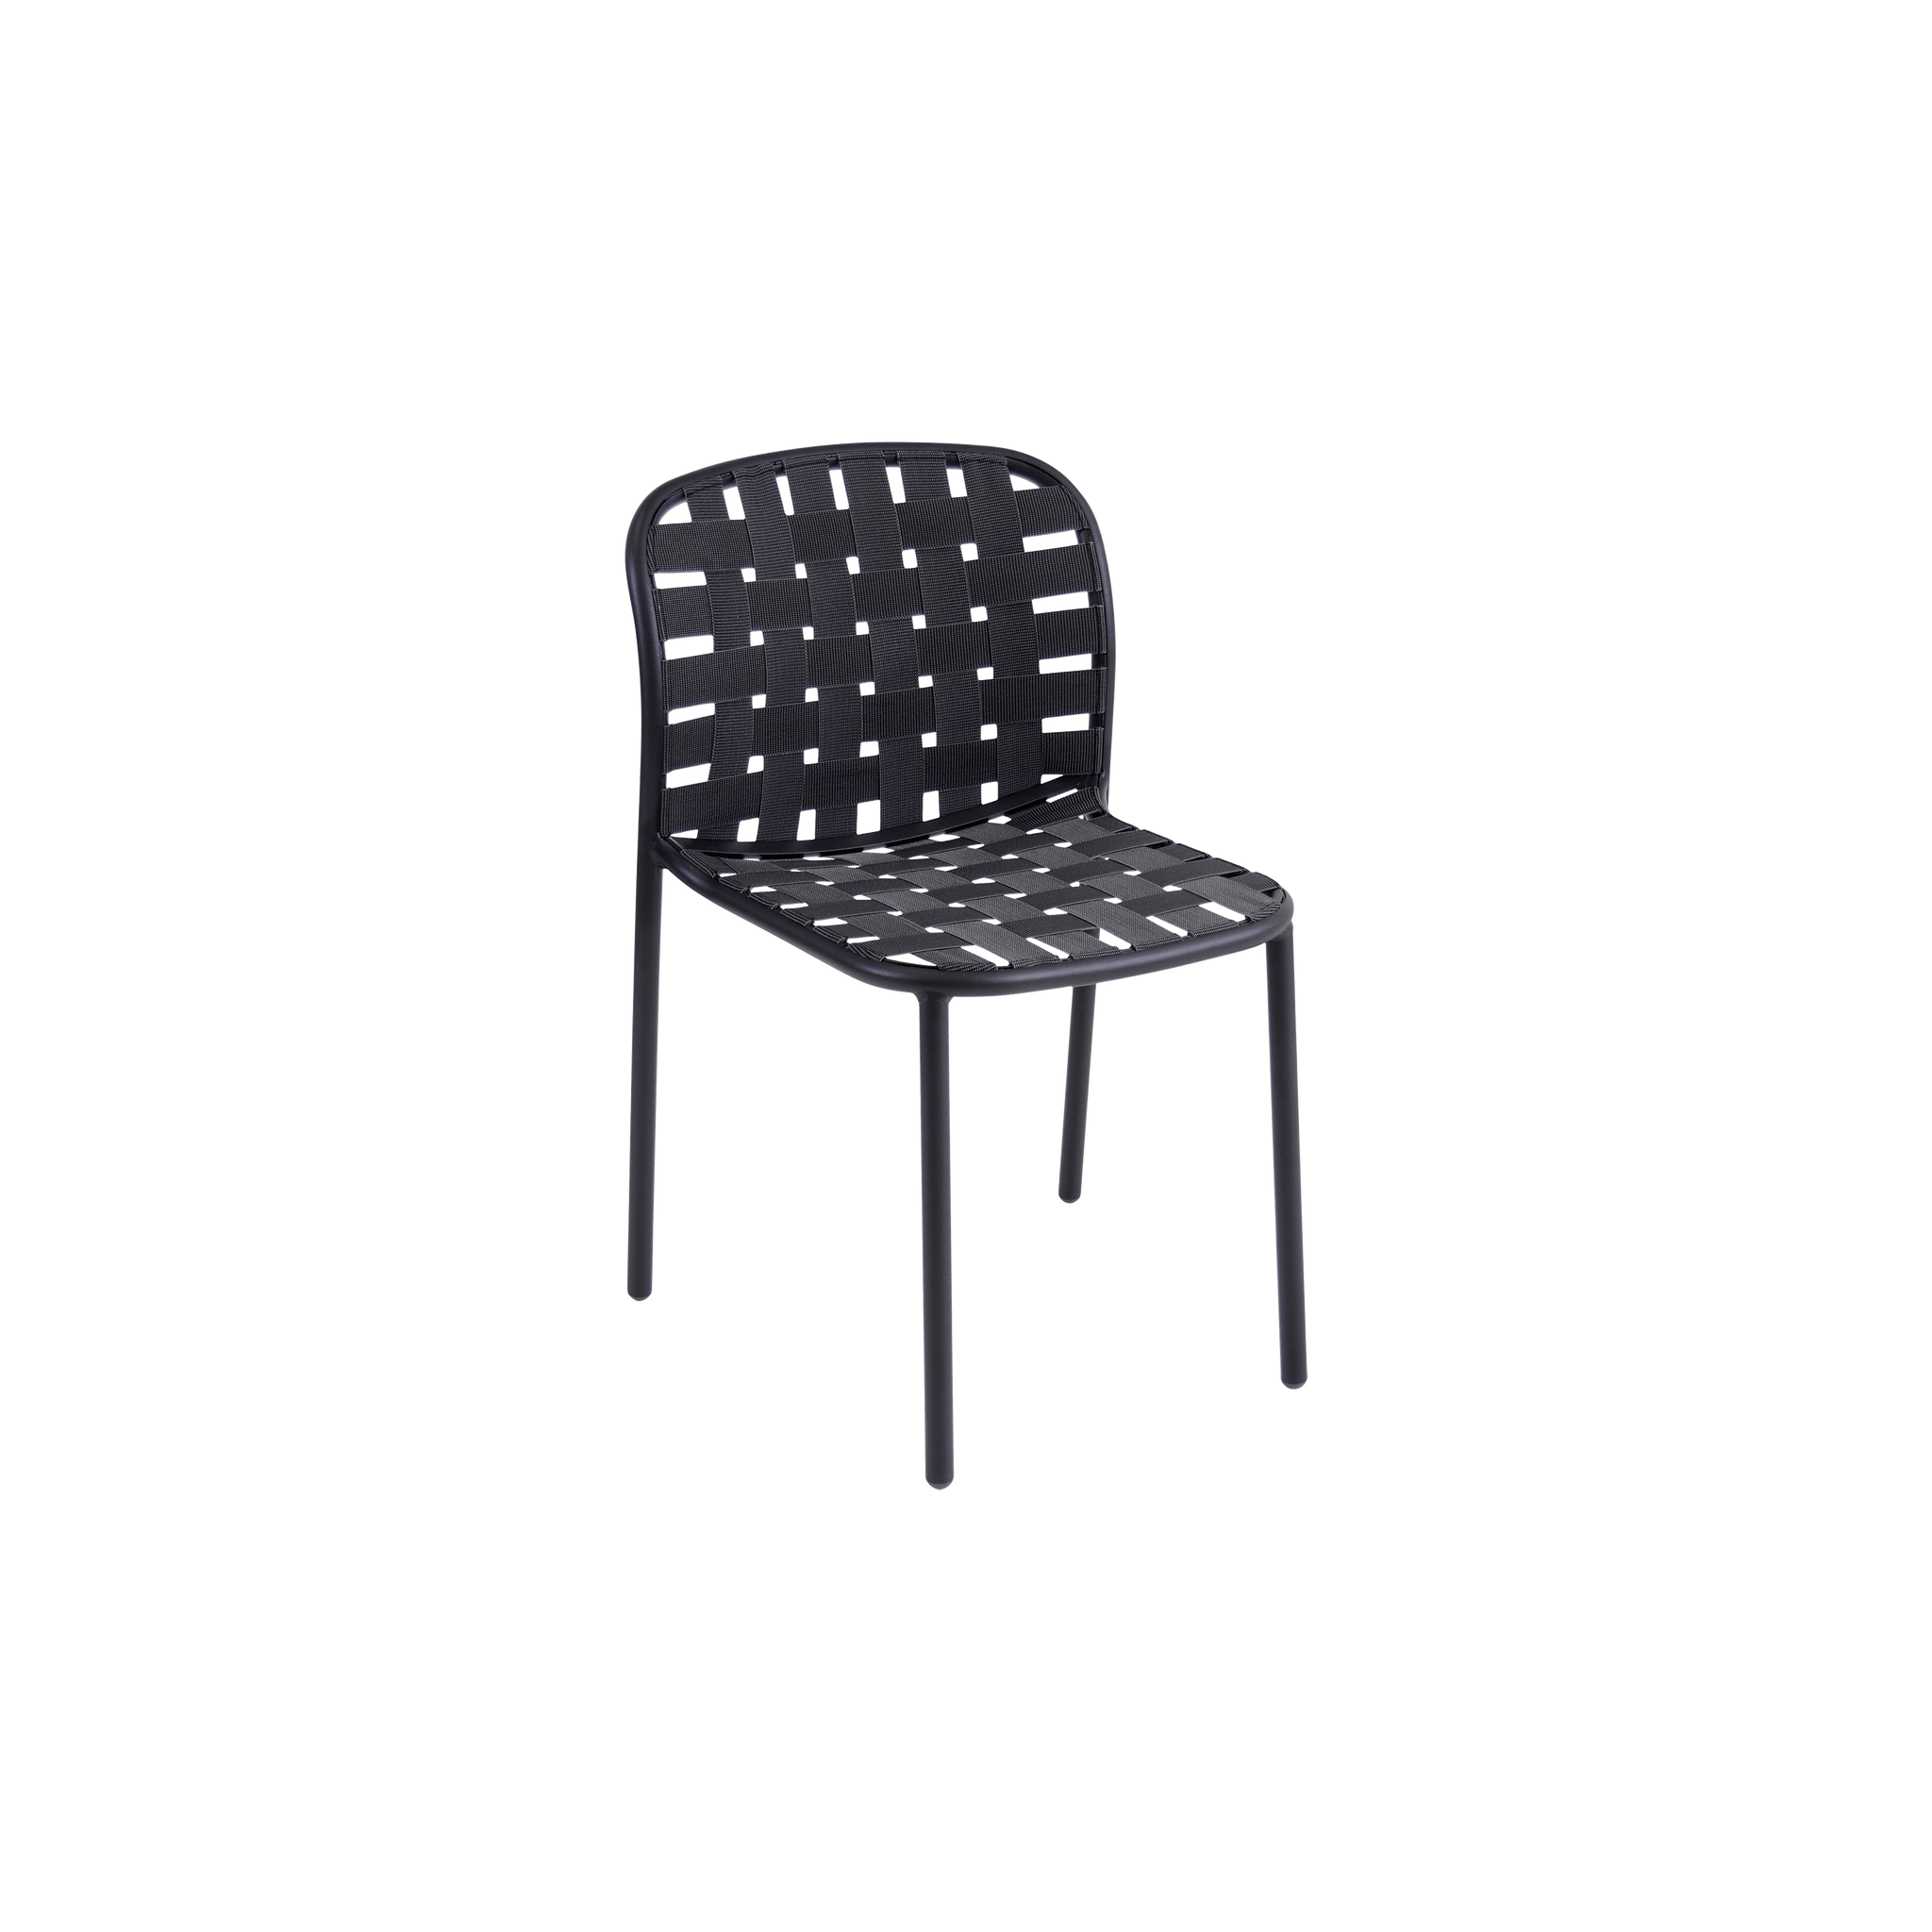 Yard Chair from Emu